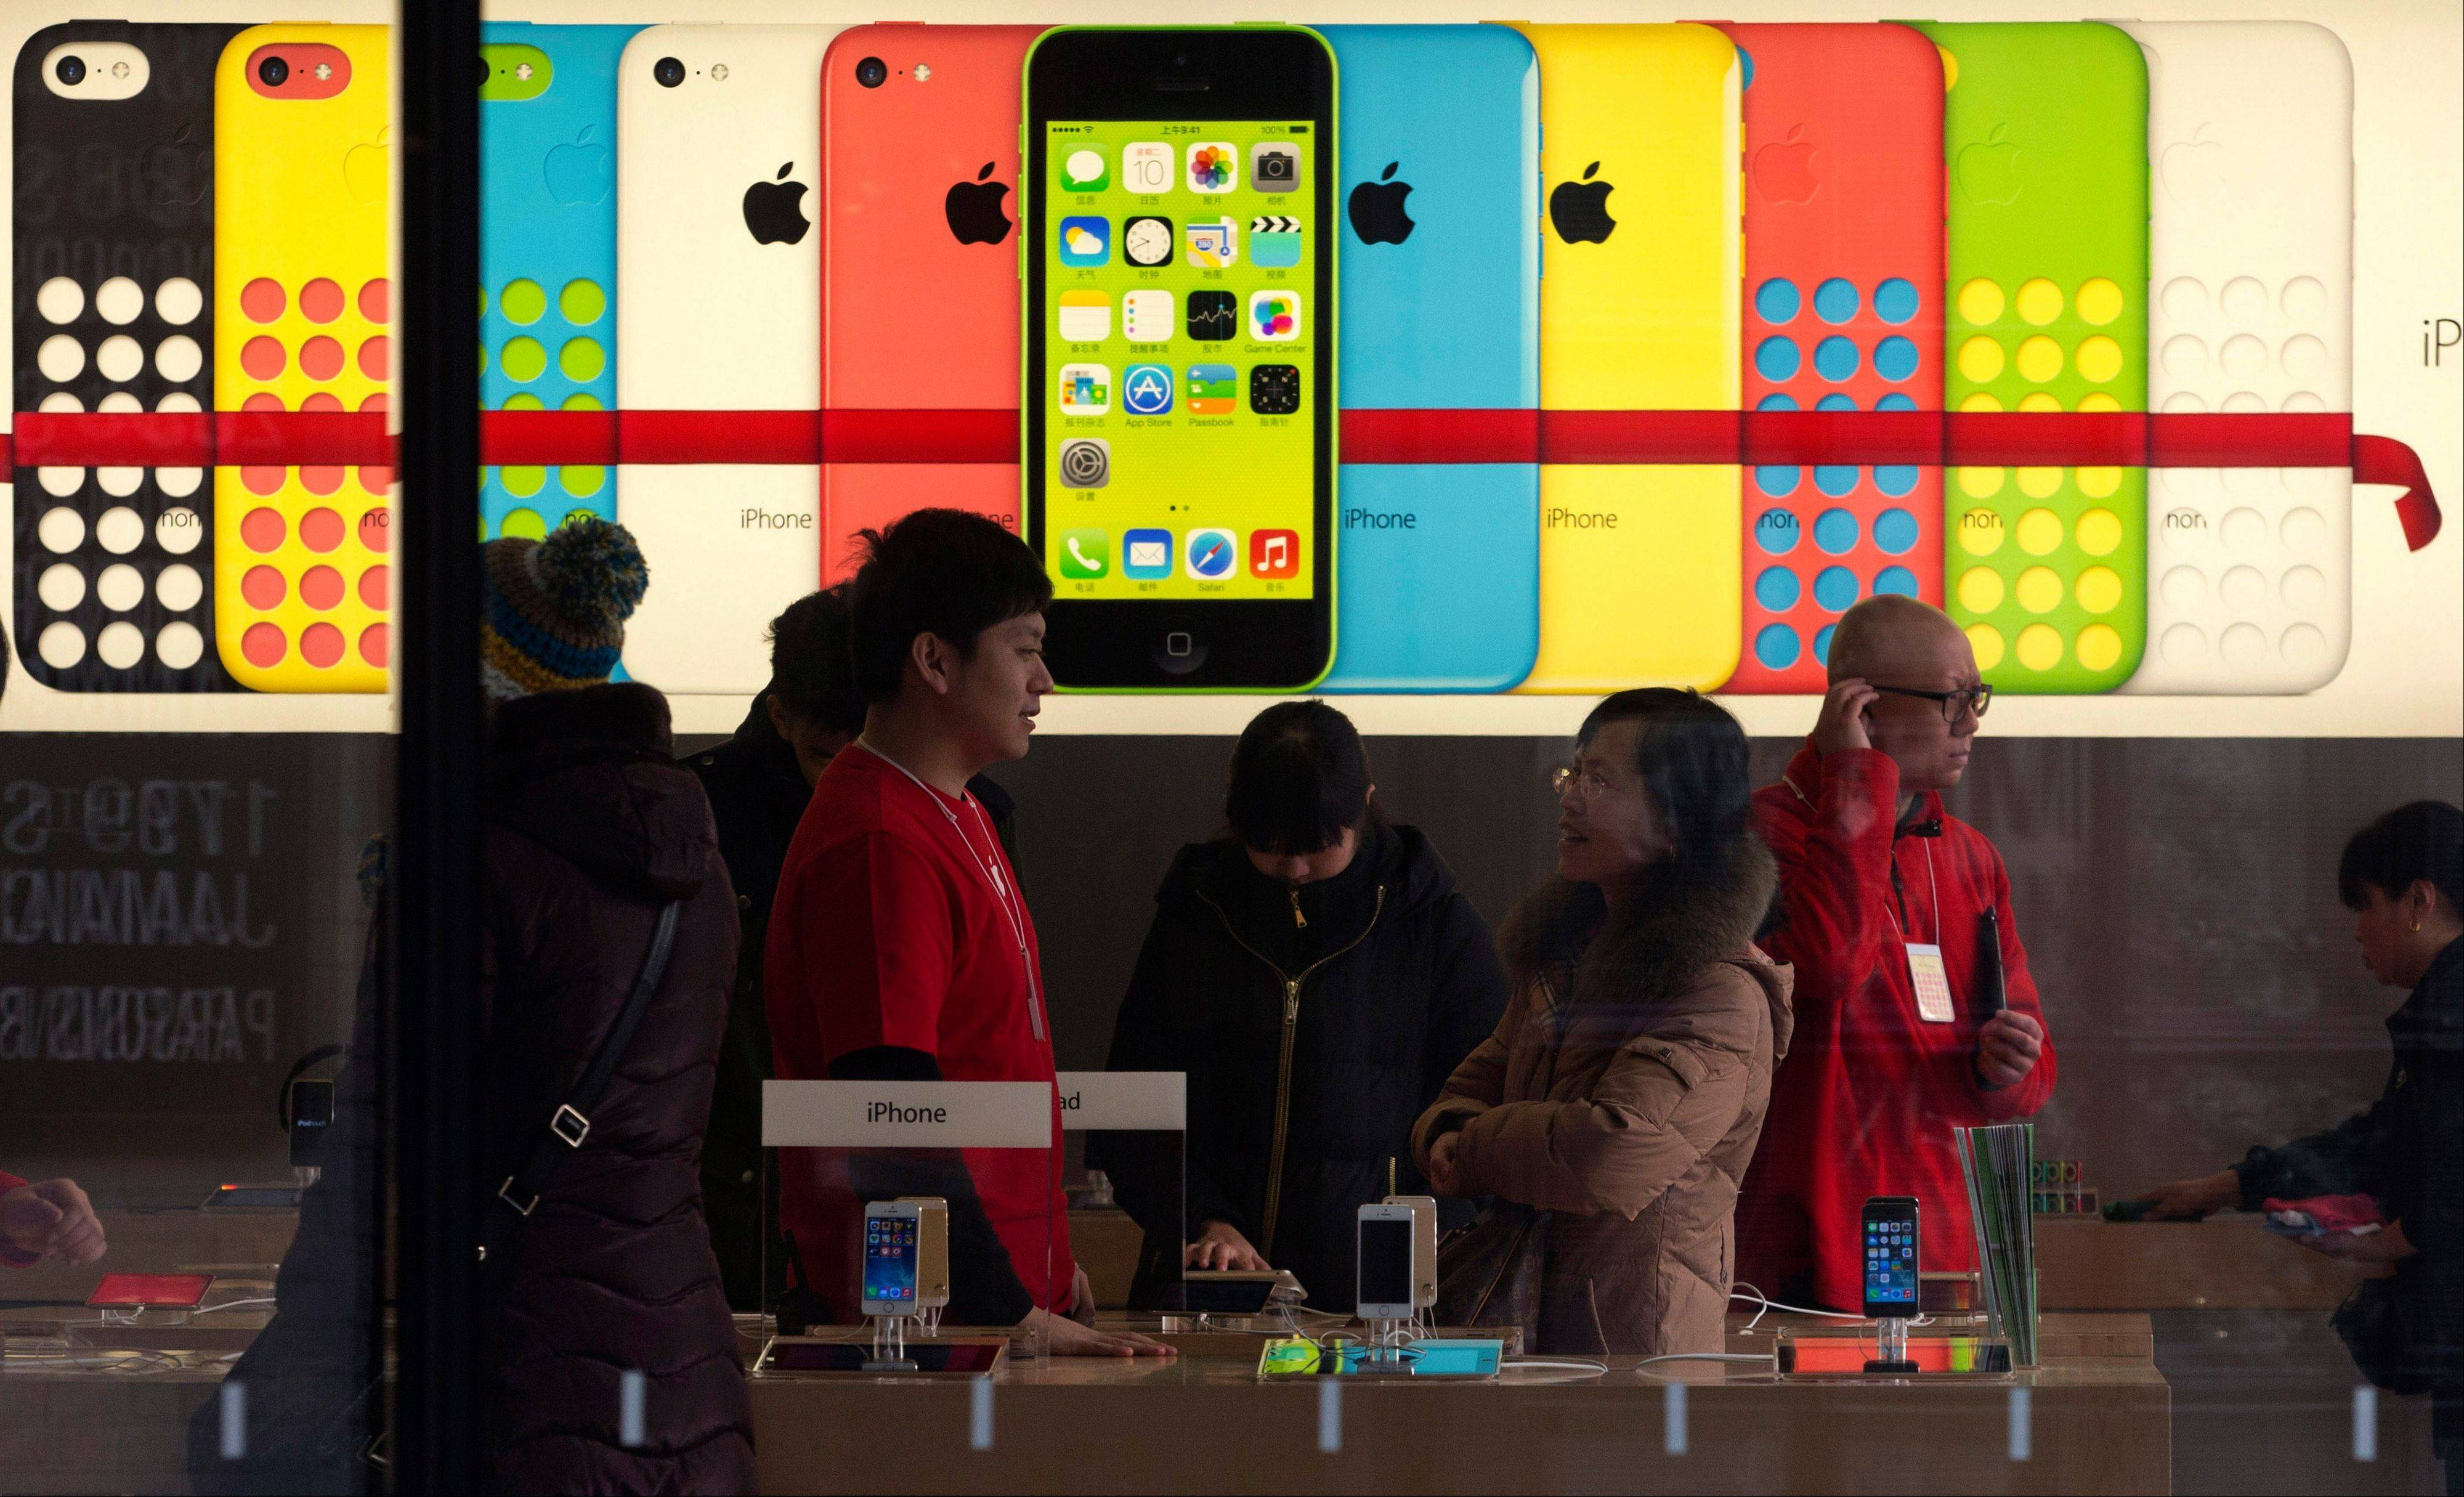 A woman talks to a salesperson in front of an advertisement for iPhones at Apple�s retail store in Beijing Monday. Apple Inc. might have a chance to pep up cooling iPhone sales in China if it finally can reach a deal with the world�s biggest phone carrier.